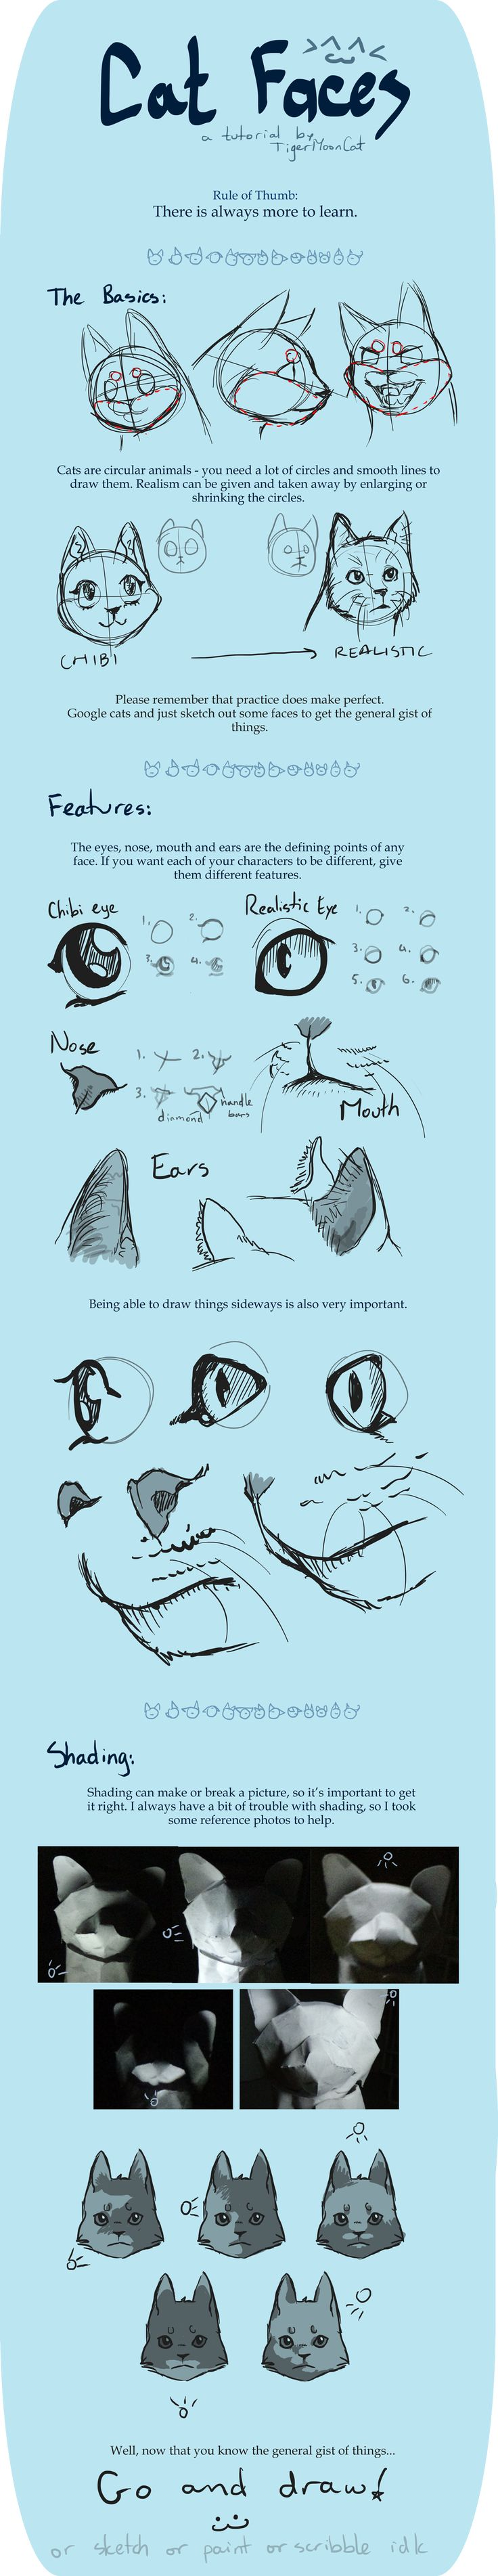 Cat Faces [Tutorial] by TigerMoonCat.deviantart.com on @deviantART